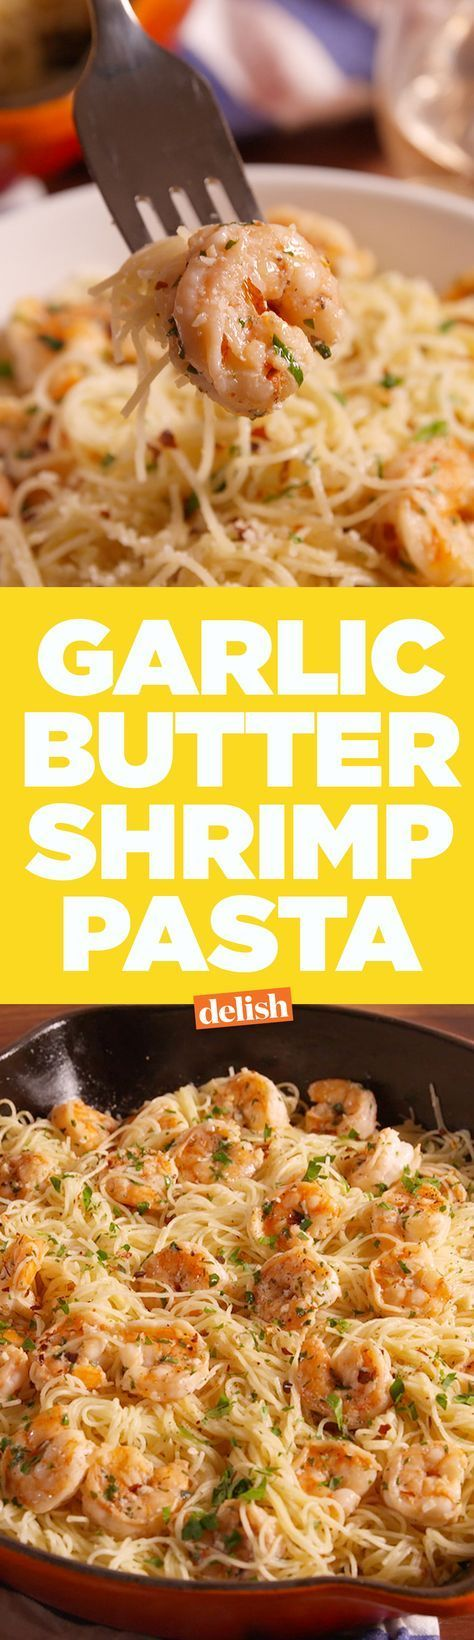 No one can resist this Garlic Butter Shrimp Pasta. Get the recipe on Delish.com.